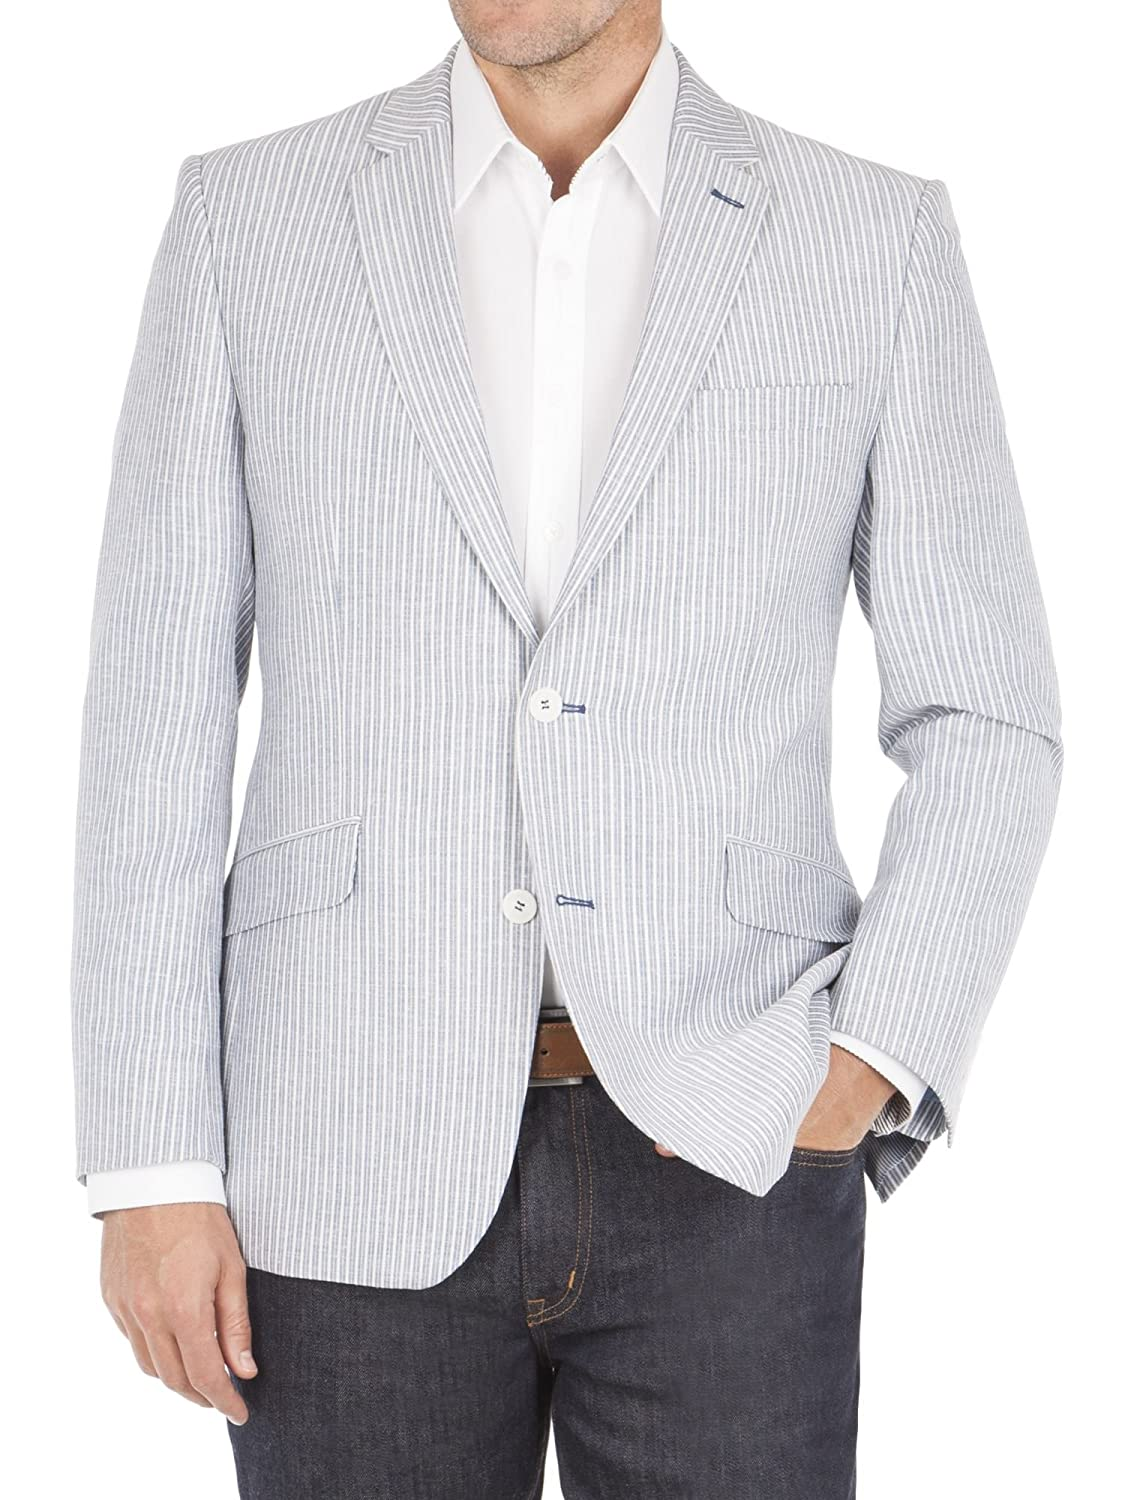 Suit Direct Aston & Gunn Blue Linen Double Stripe Jacket - 0046192 Regular Fit Formal Jacket